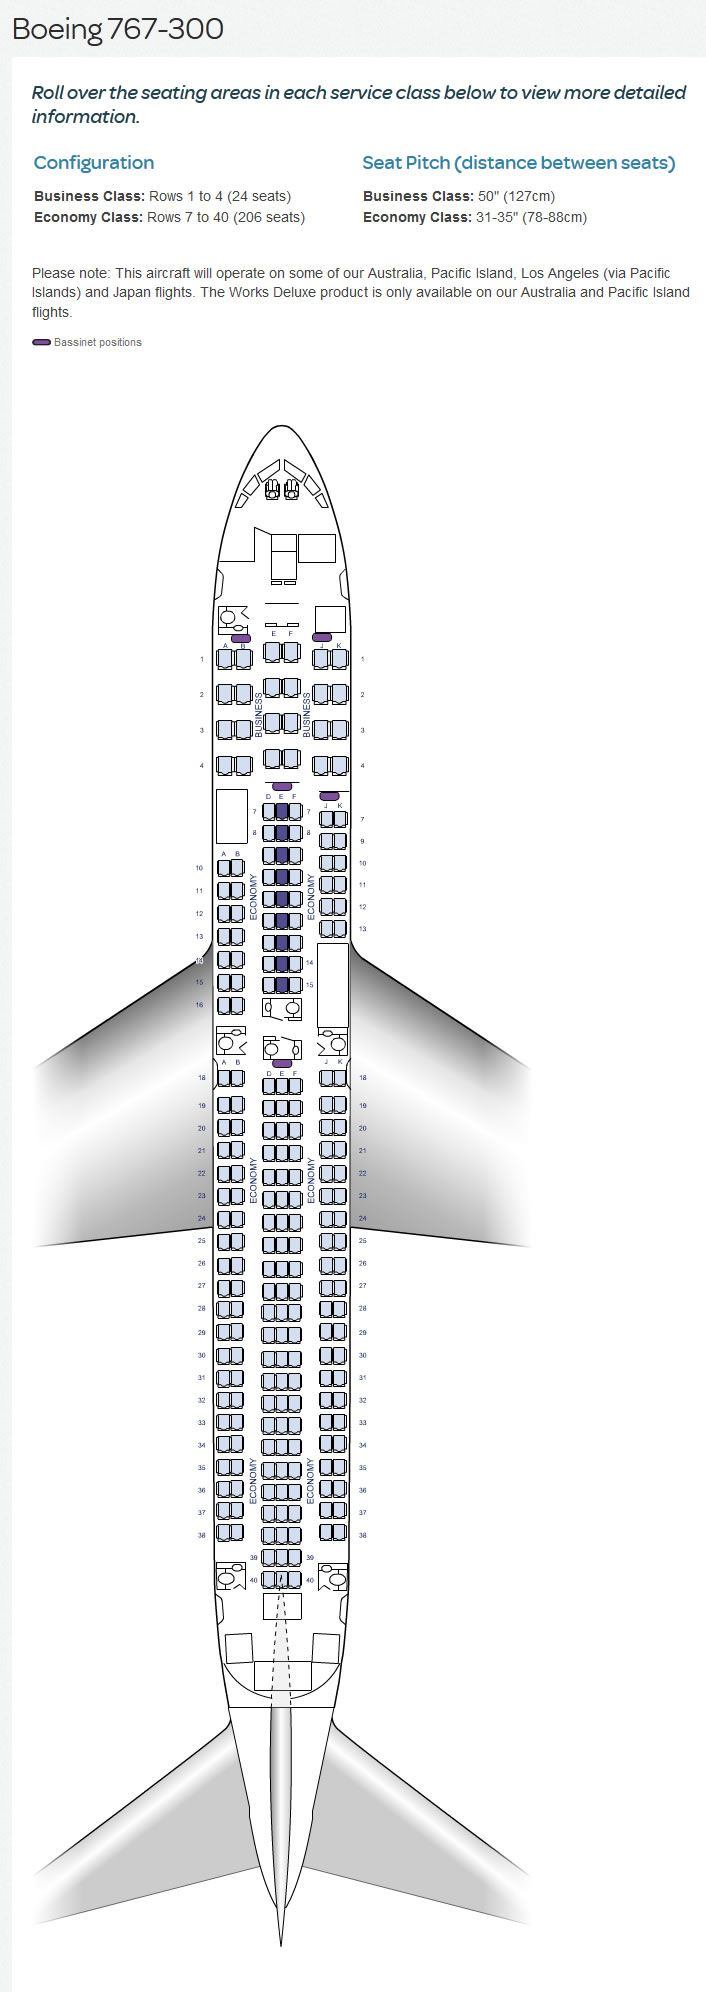 Air New Zealand Airlines Boeing 767 300 Aircraft Seating Chart Airline Seating Charts